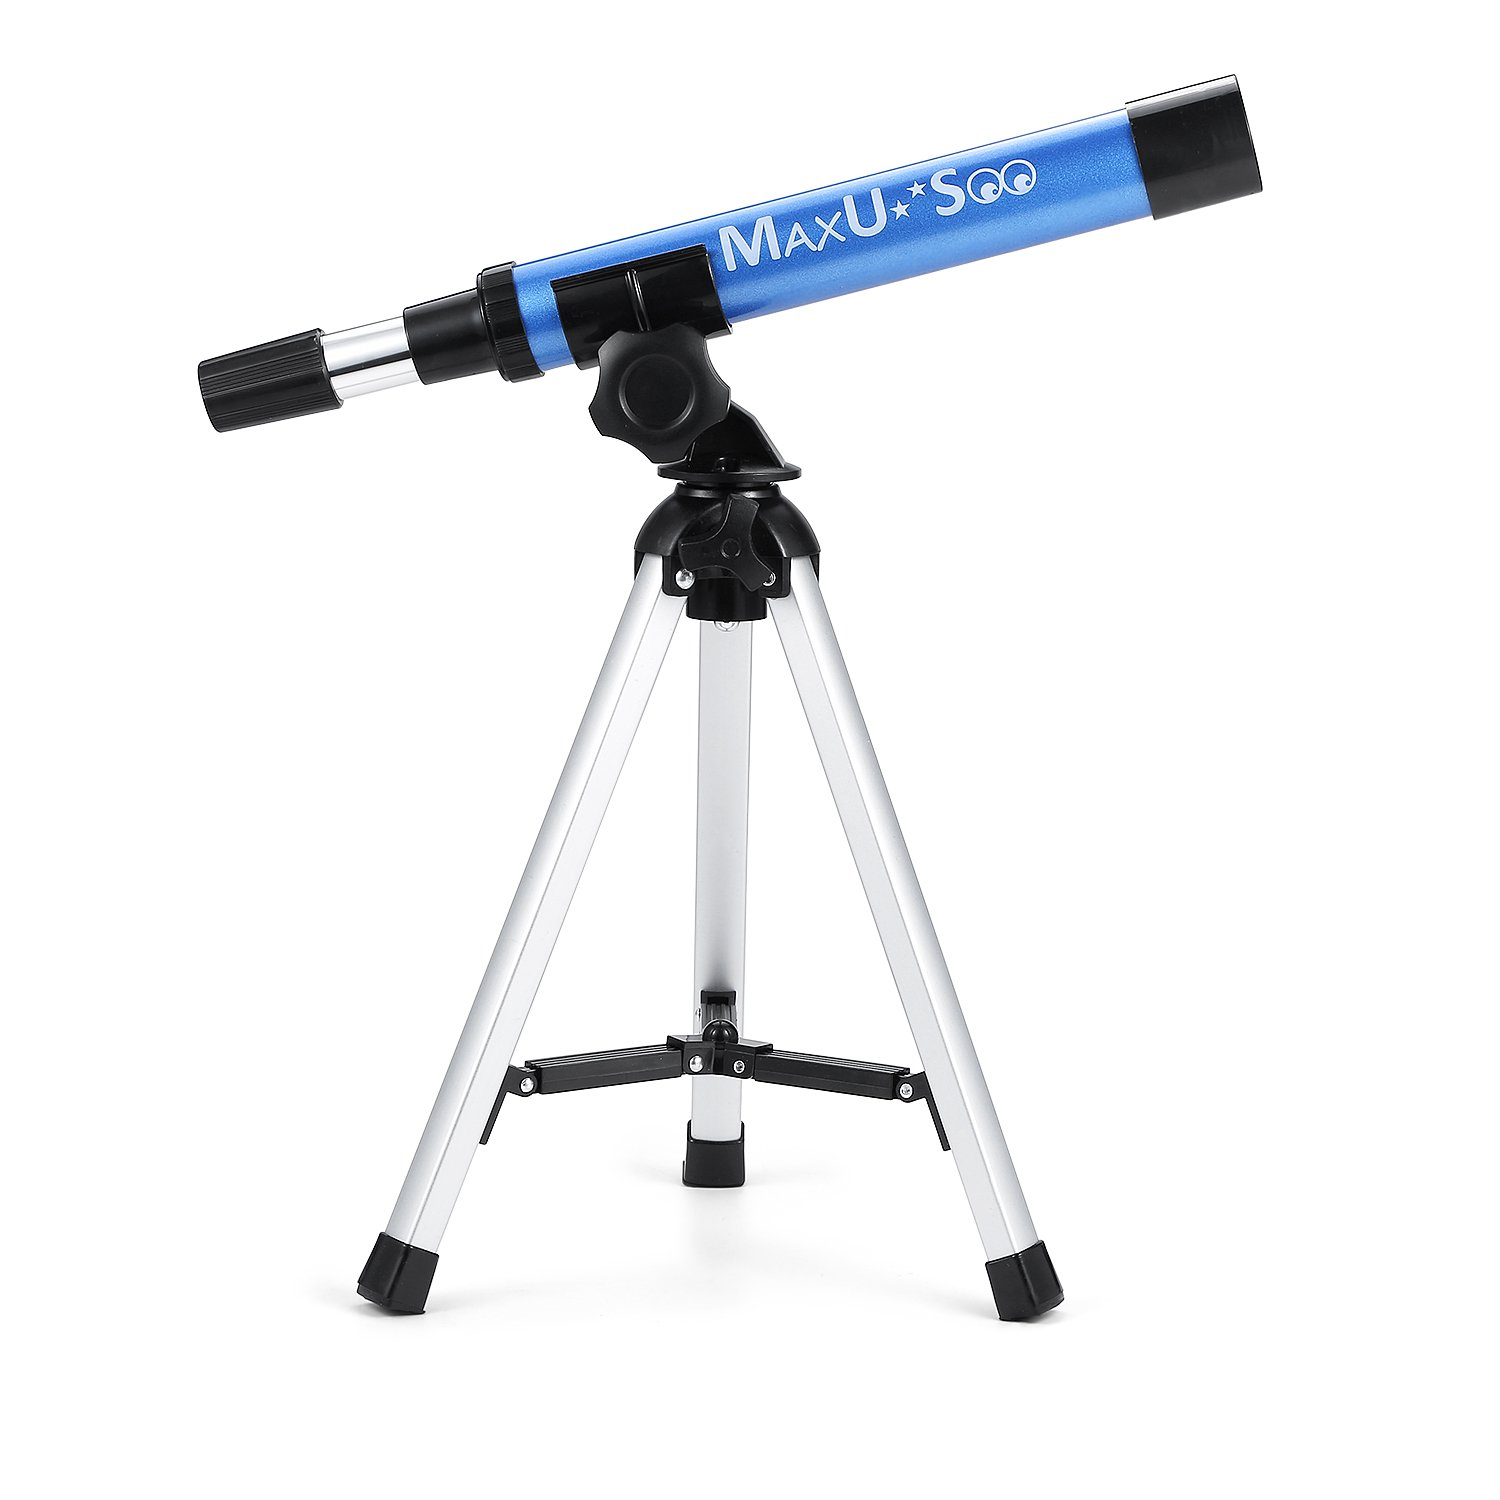 MaxUSee Refractor Telescope for Kids, Portable Telescope with 30X Power for Beginner, Travel Scope Aperture 30mm, Small Telescope with Tabletop Tripod by MaxUSee